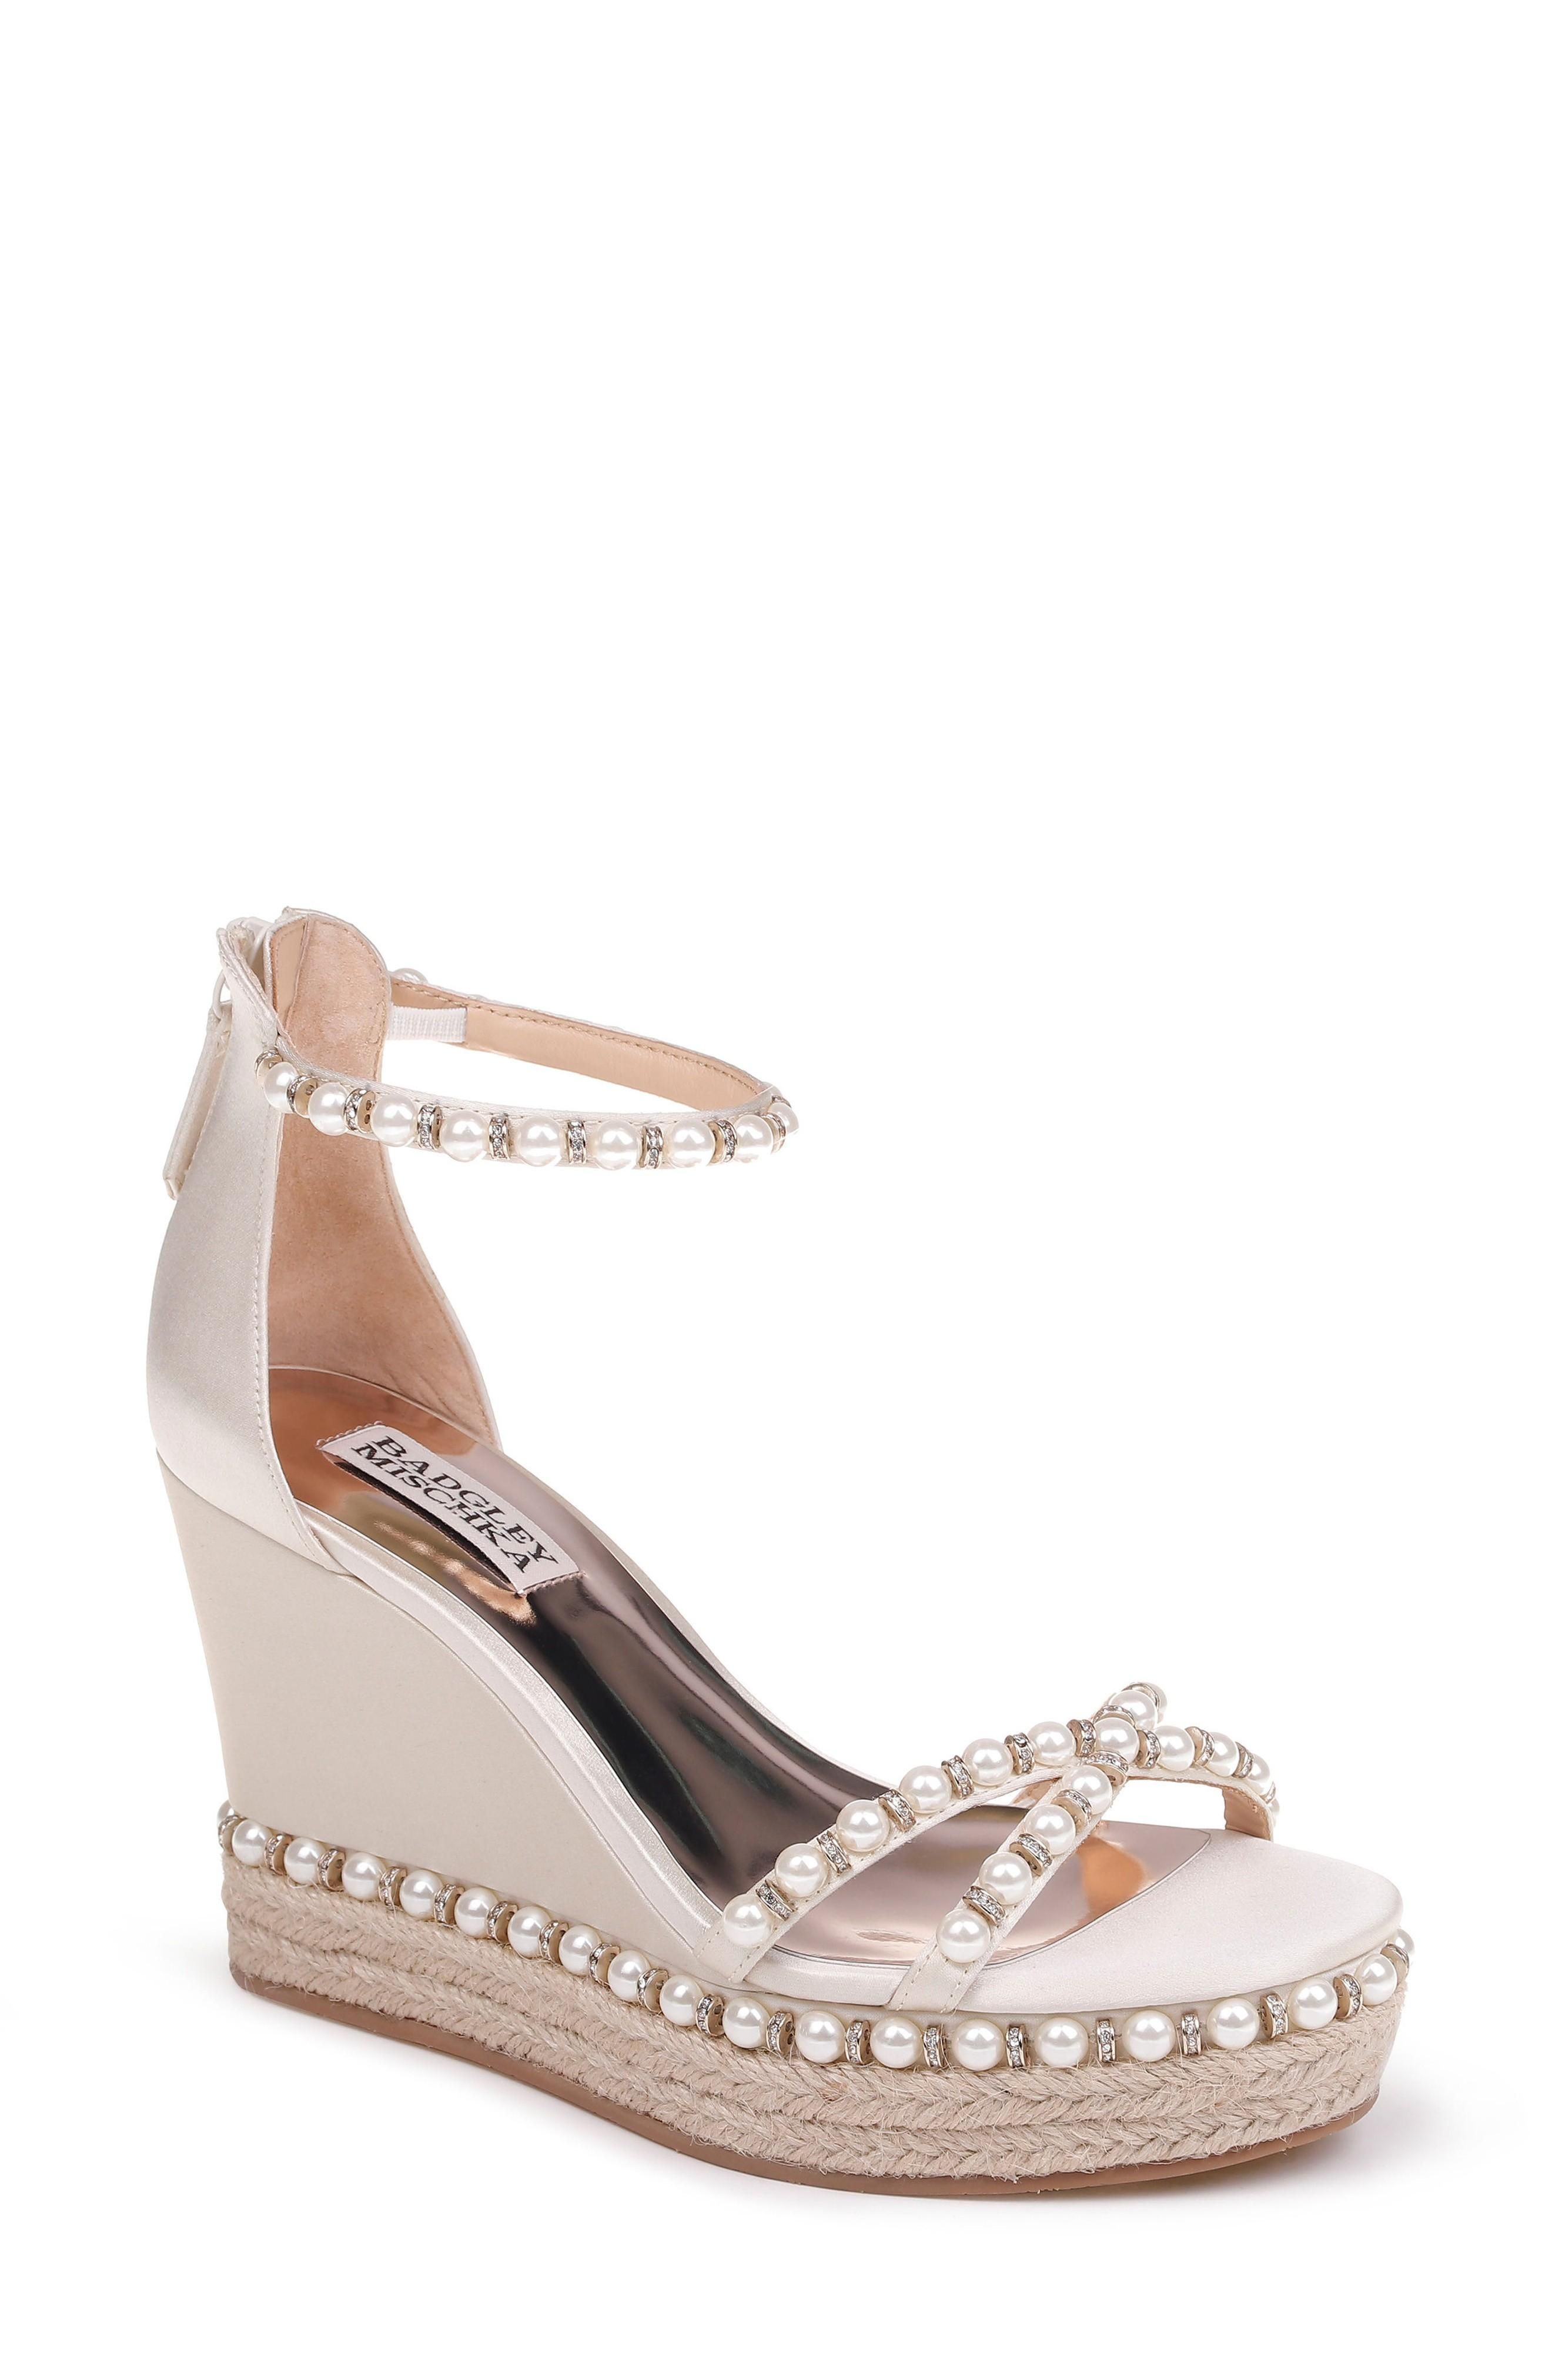 93de0c47506 An espadrille-wrapped sole and lustrous pearly beads with sparkling crystals  distinguish an eye-catching wedge secured by a slim strap that wraps around  the ...